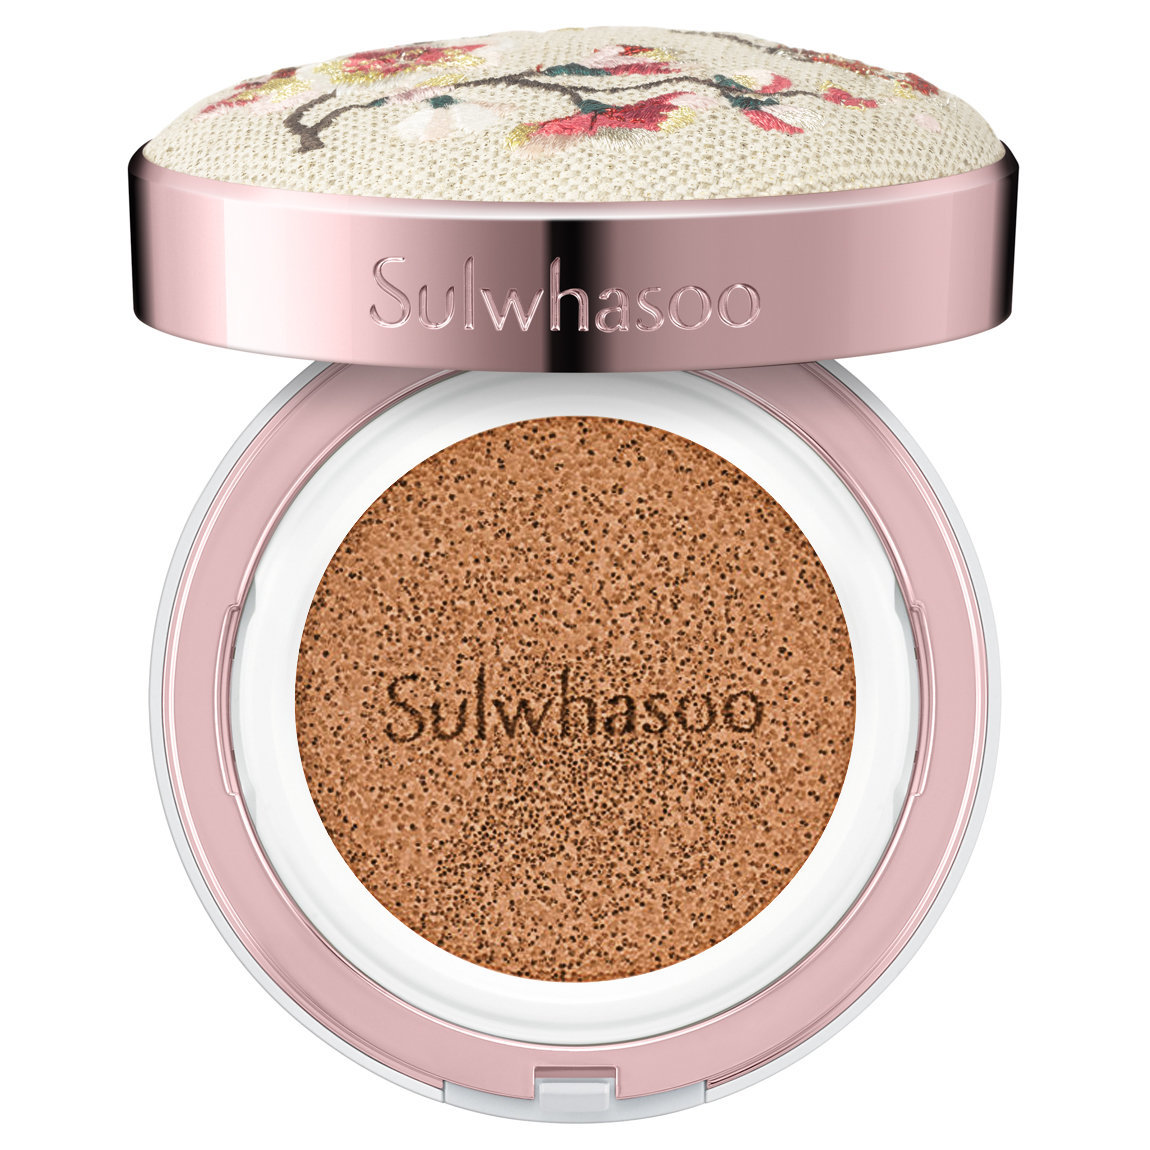 Sulwhasoo Limited Edition Perfecting Cushion No. 25 product swatch.